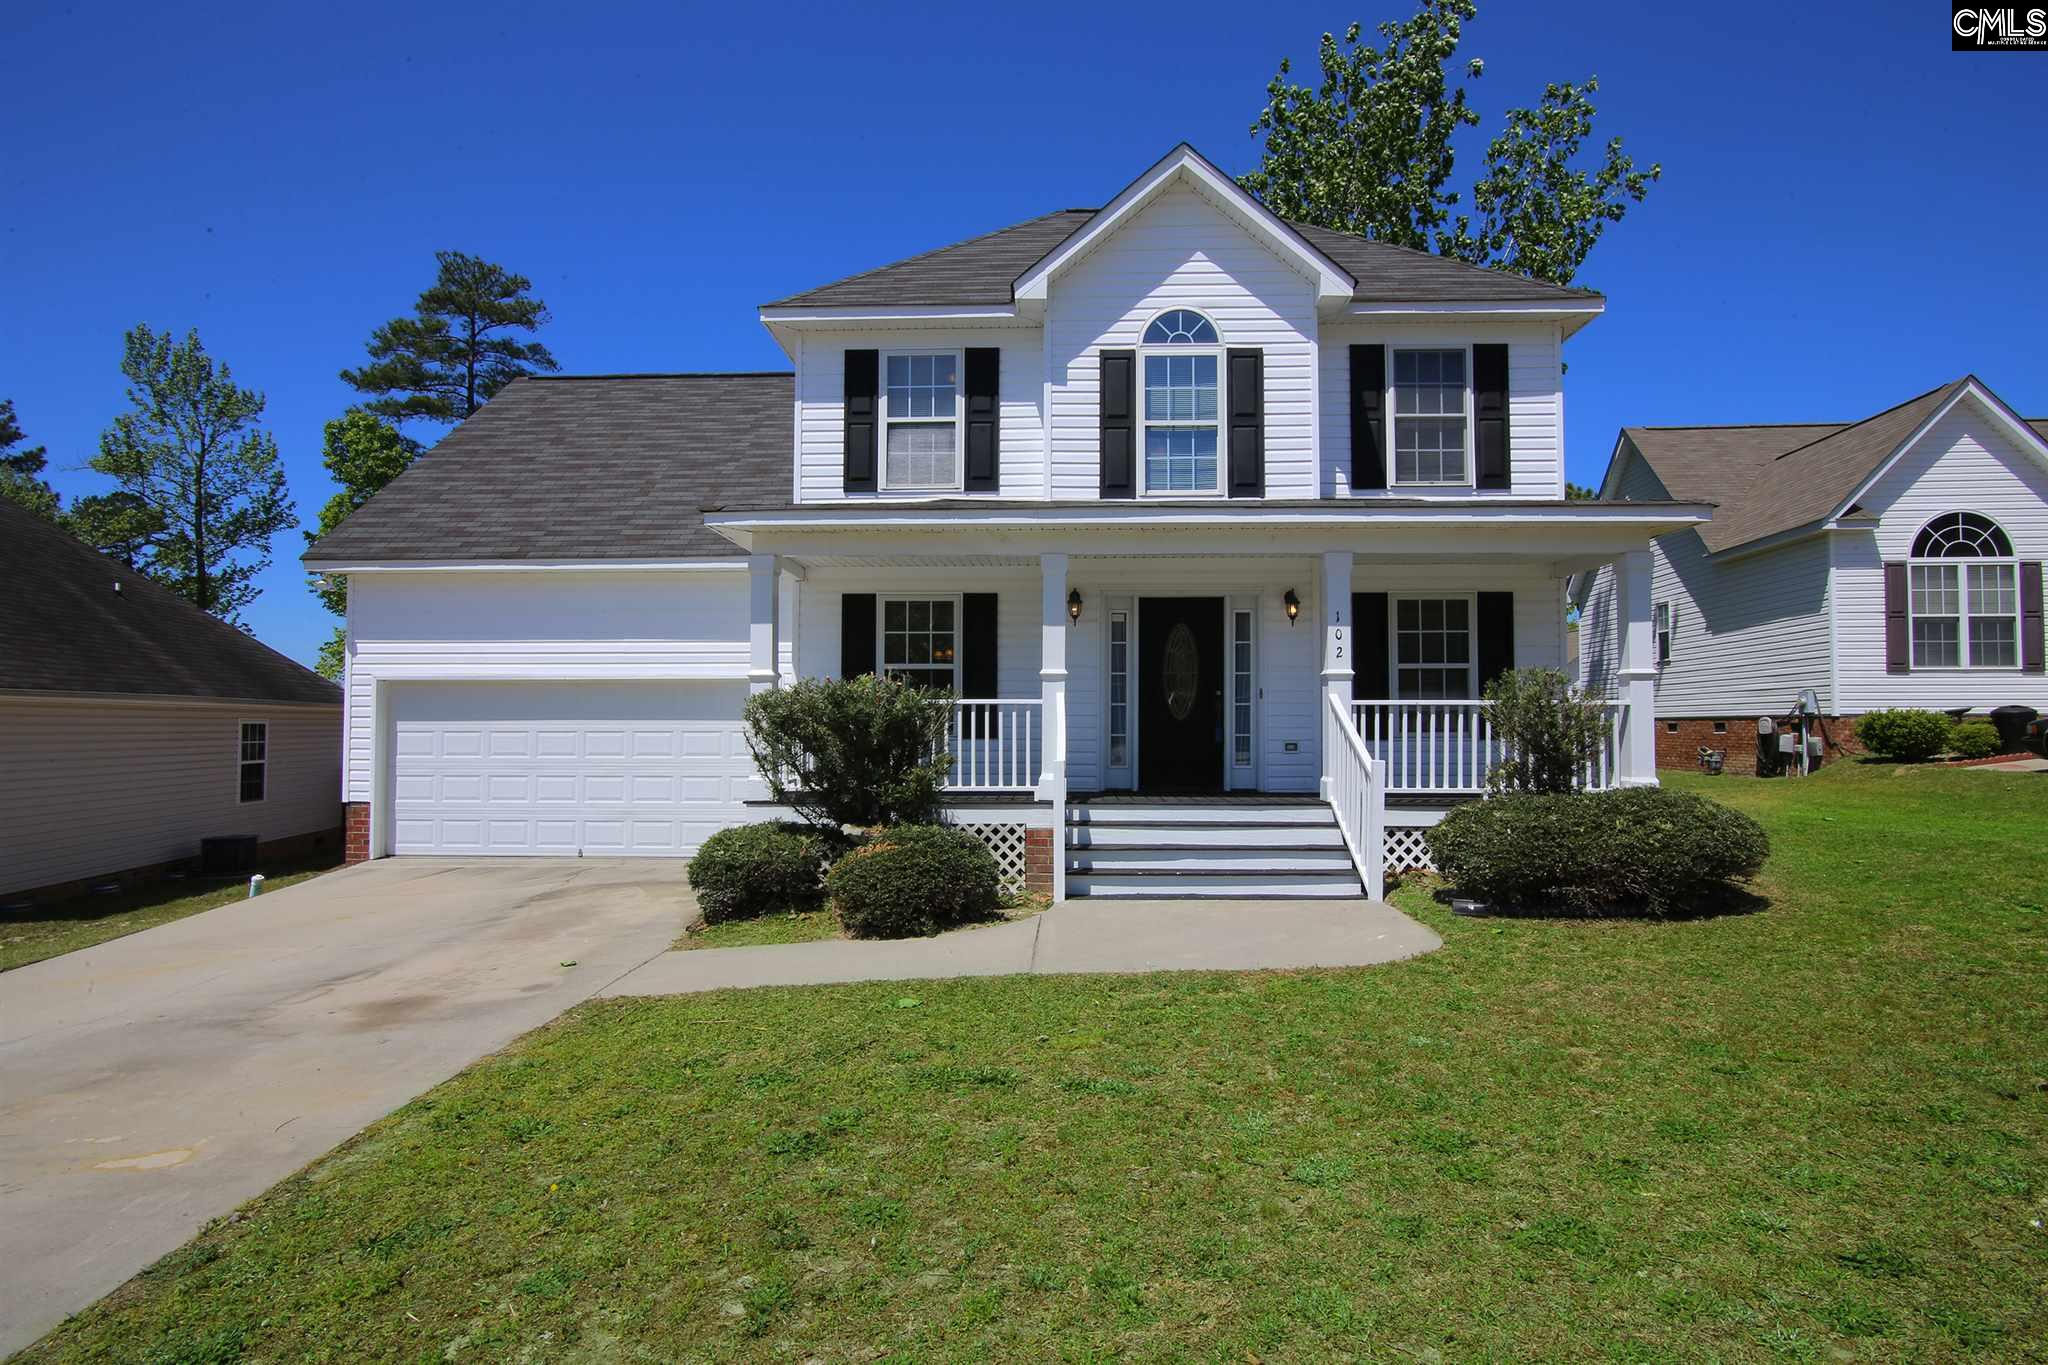 102 Ashley Crest Columbia, SC 29229-9444